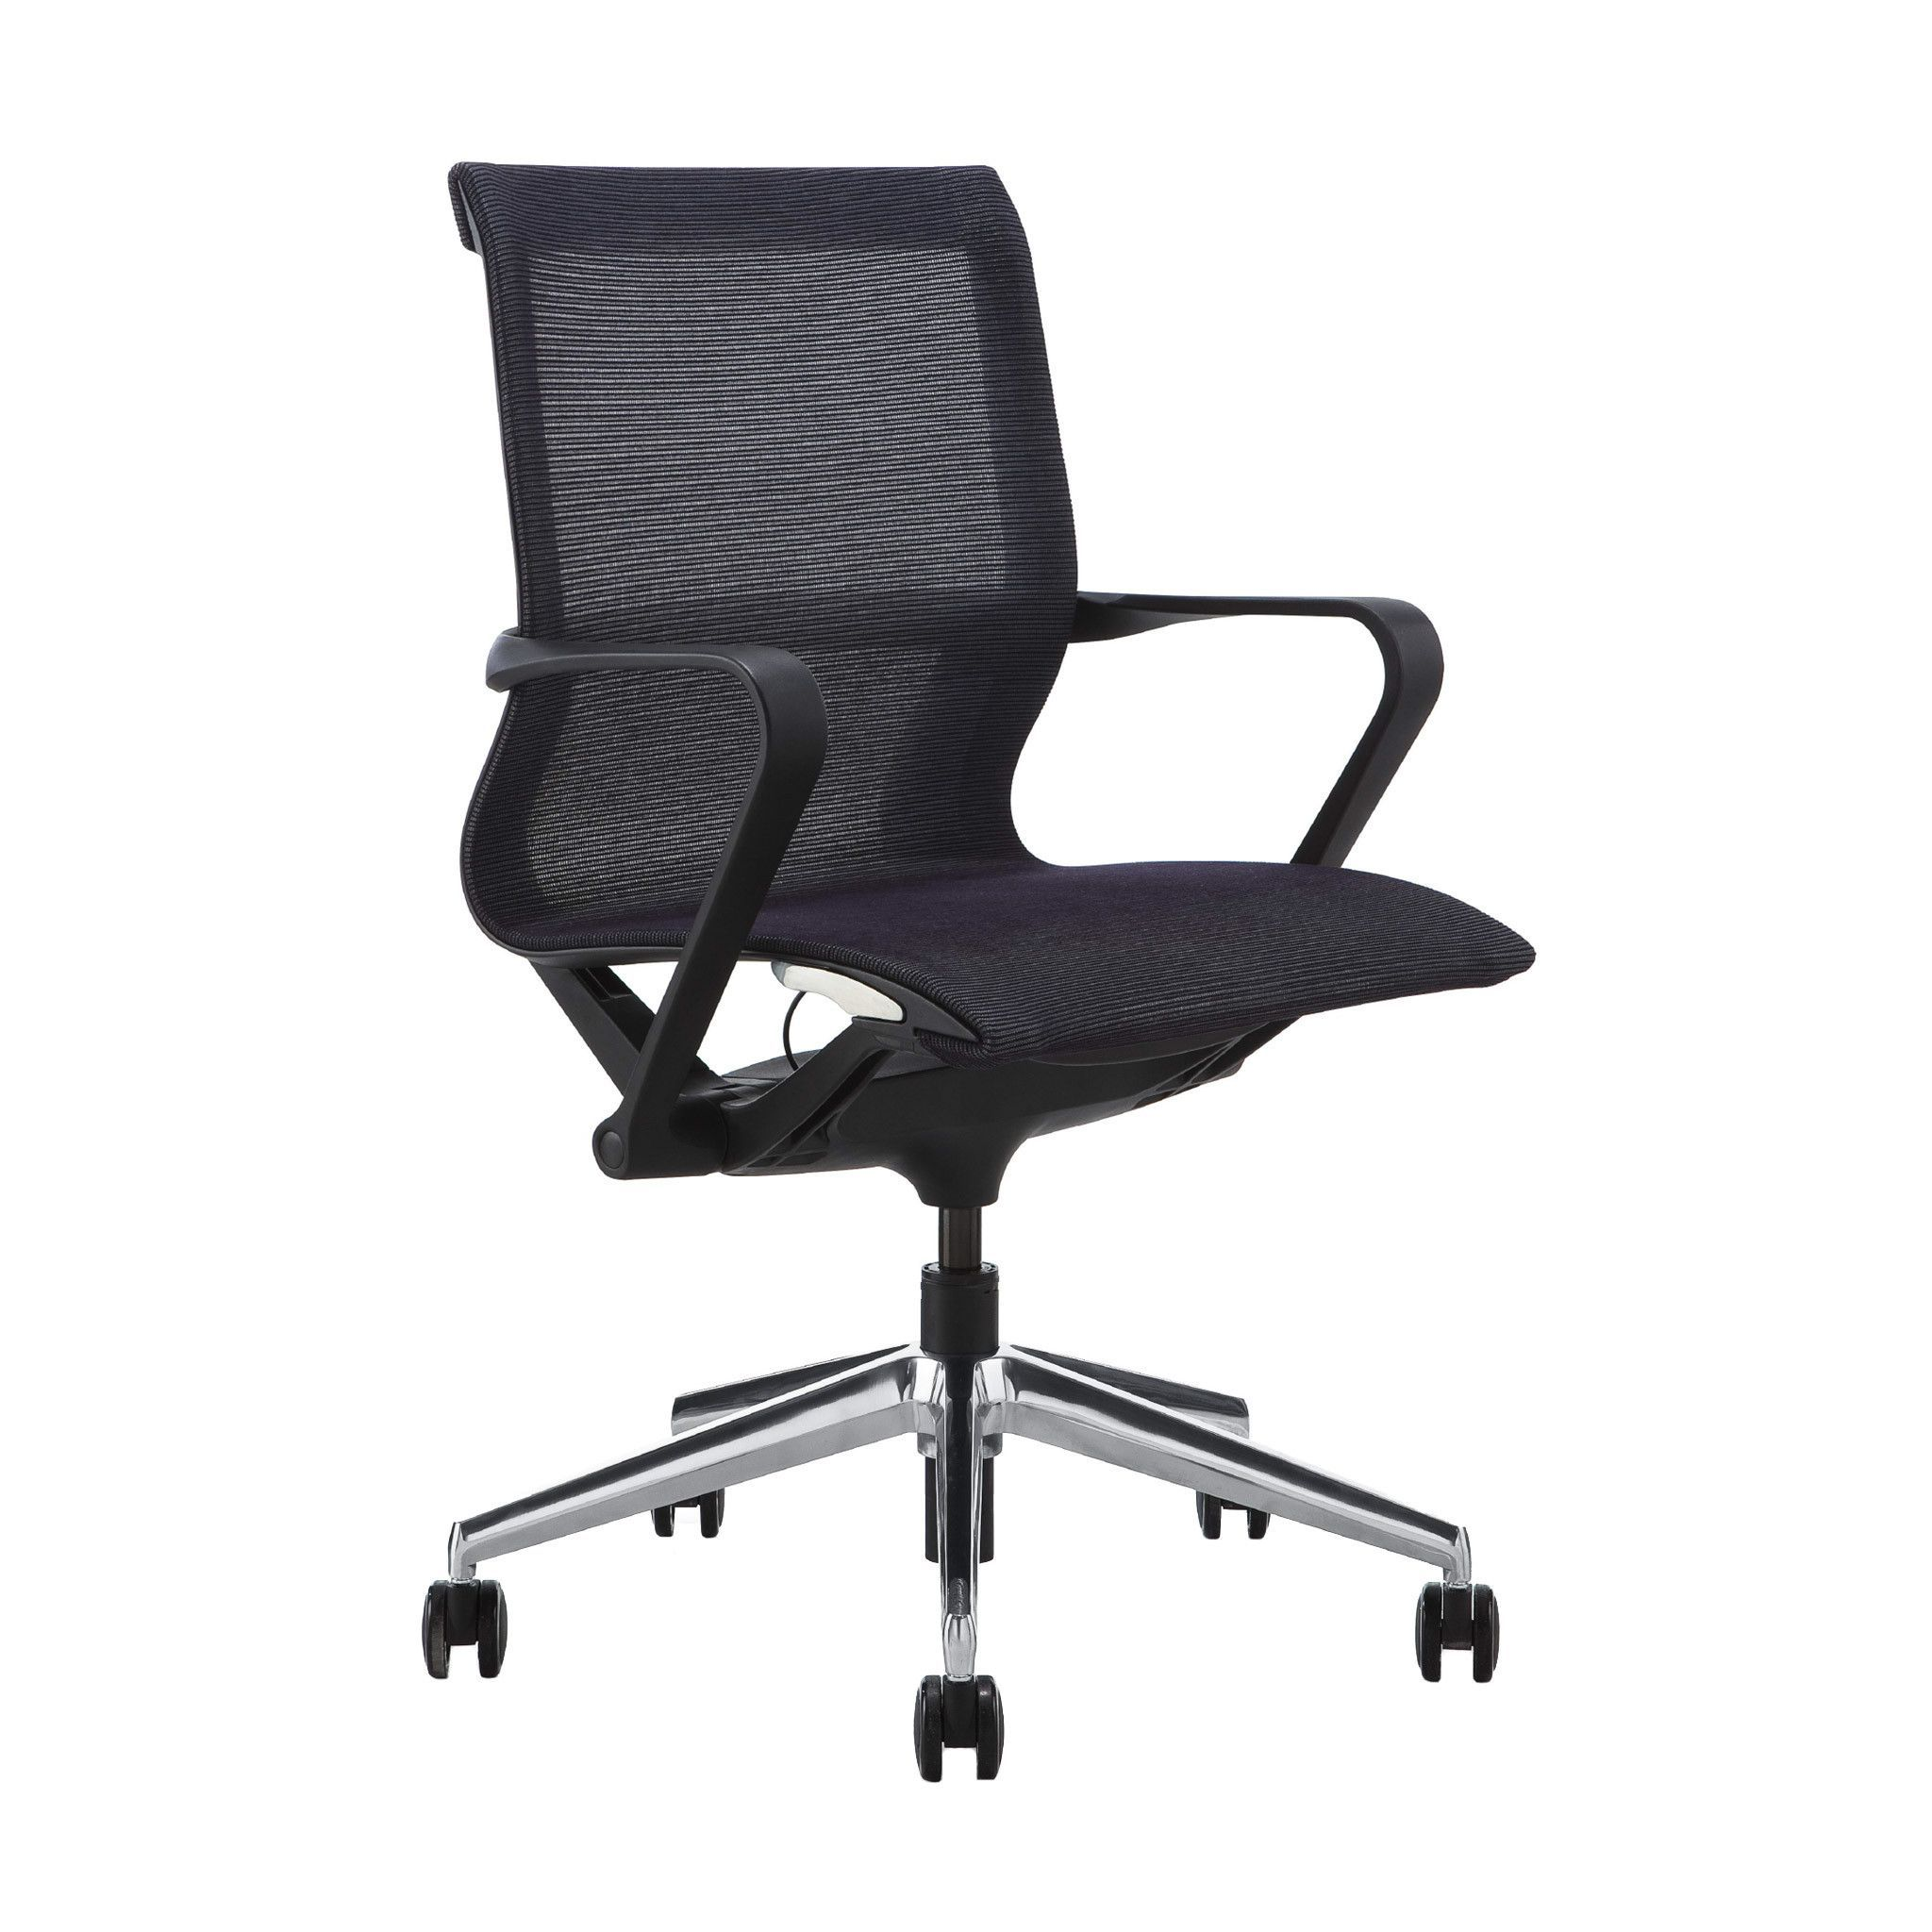 Empire mesh management chair black empire management and office